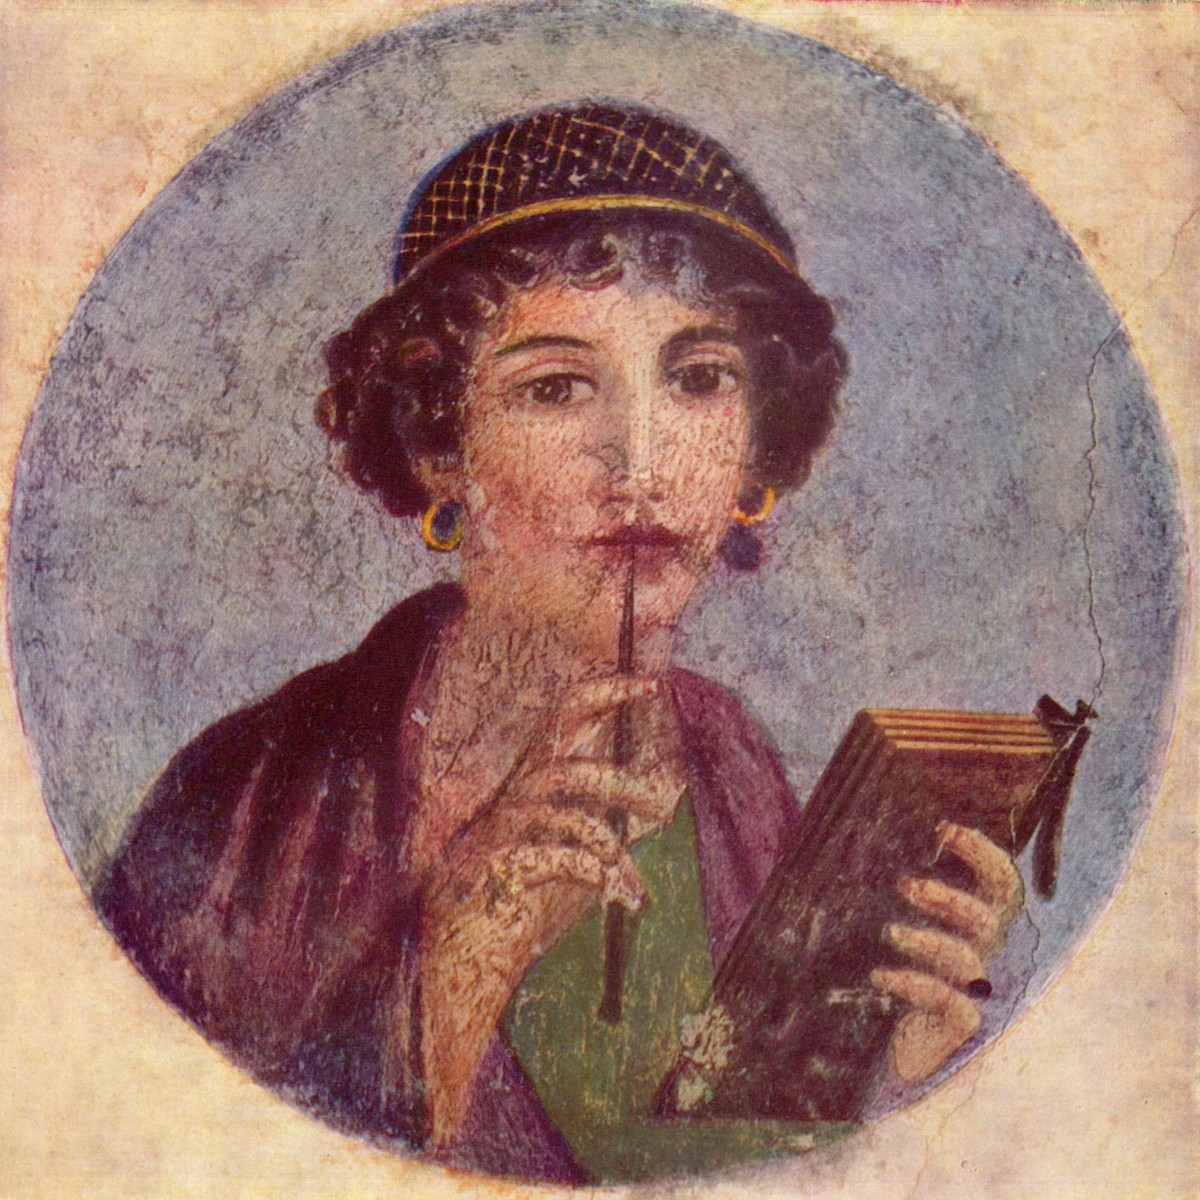 Portrait of a woman holding a pen and a wax tablet , commonly known as Sappho. Pompeii. c. 50 AD.